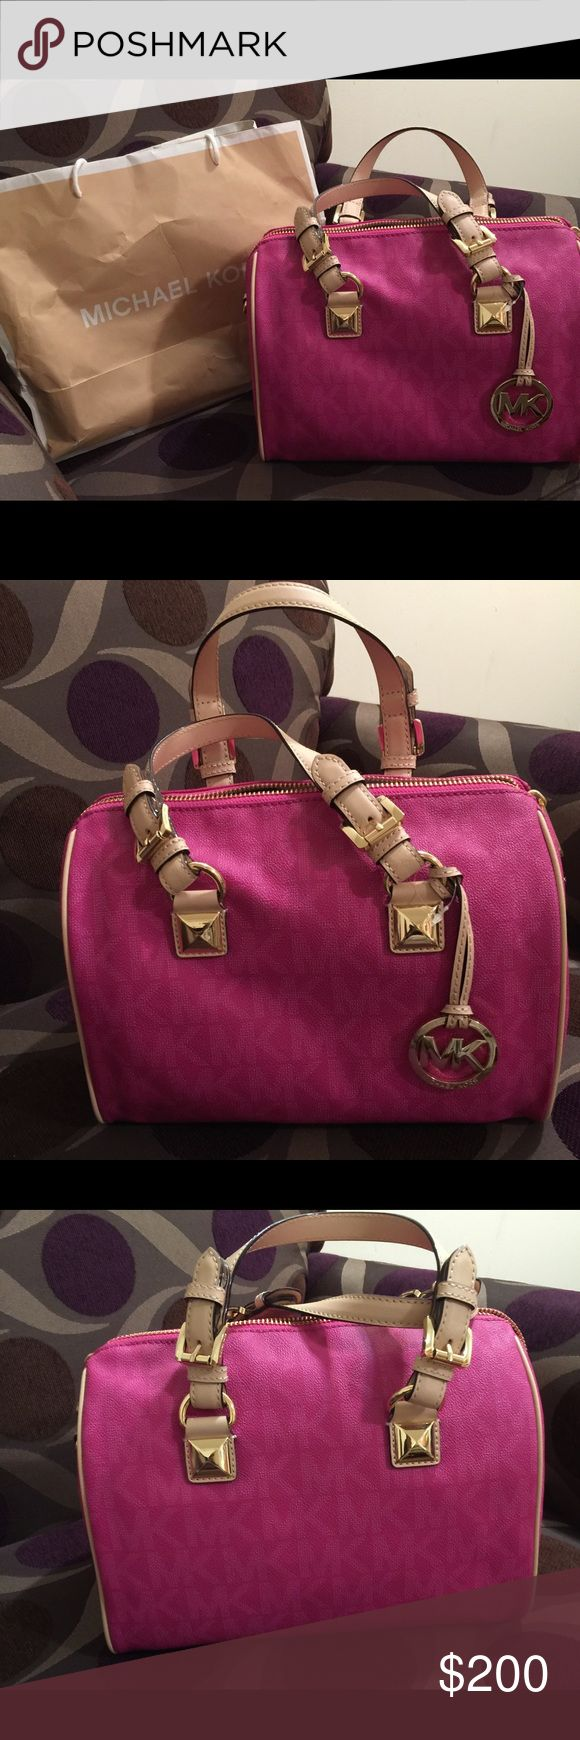 Women satchel tote bag Pink and brown women Michael Kors bag, worn one time and haven't look back at it since. Still in good shape, like new.. no signs of wear and tear. Very spacious on the inside KORS Michael Kors Bags Satchels